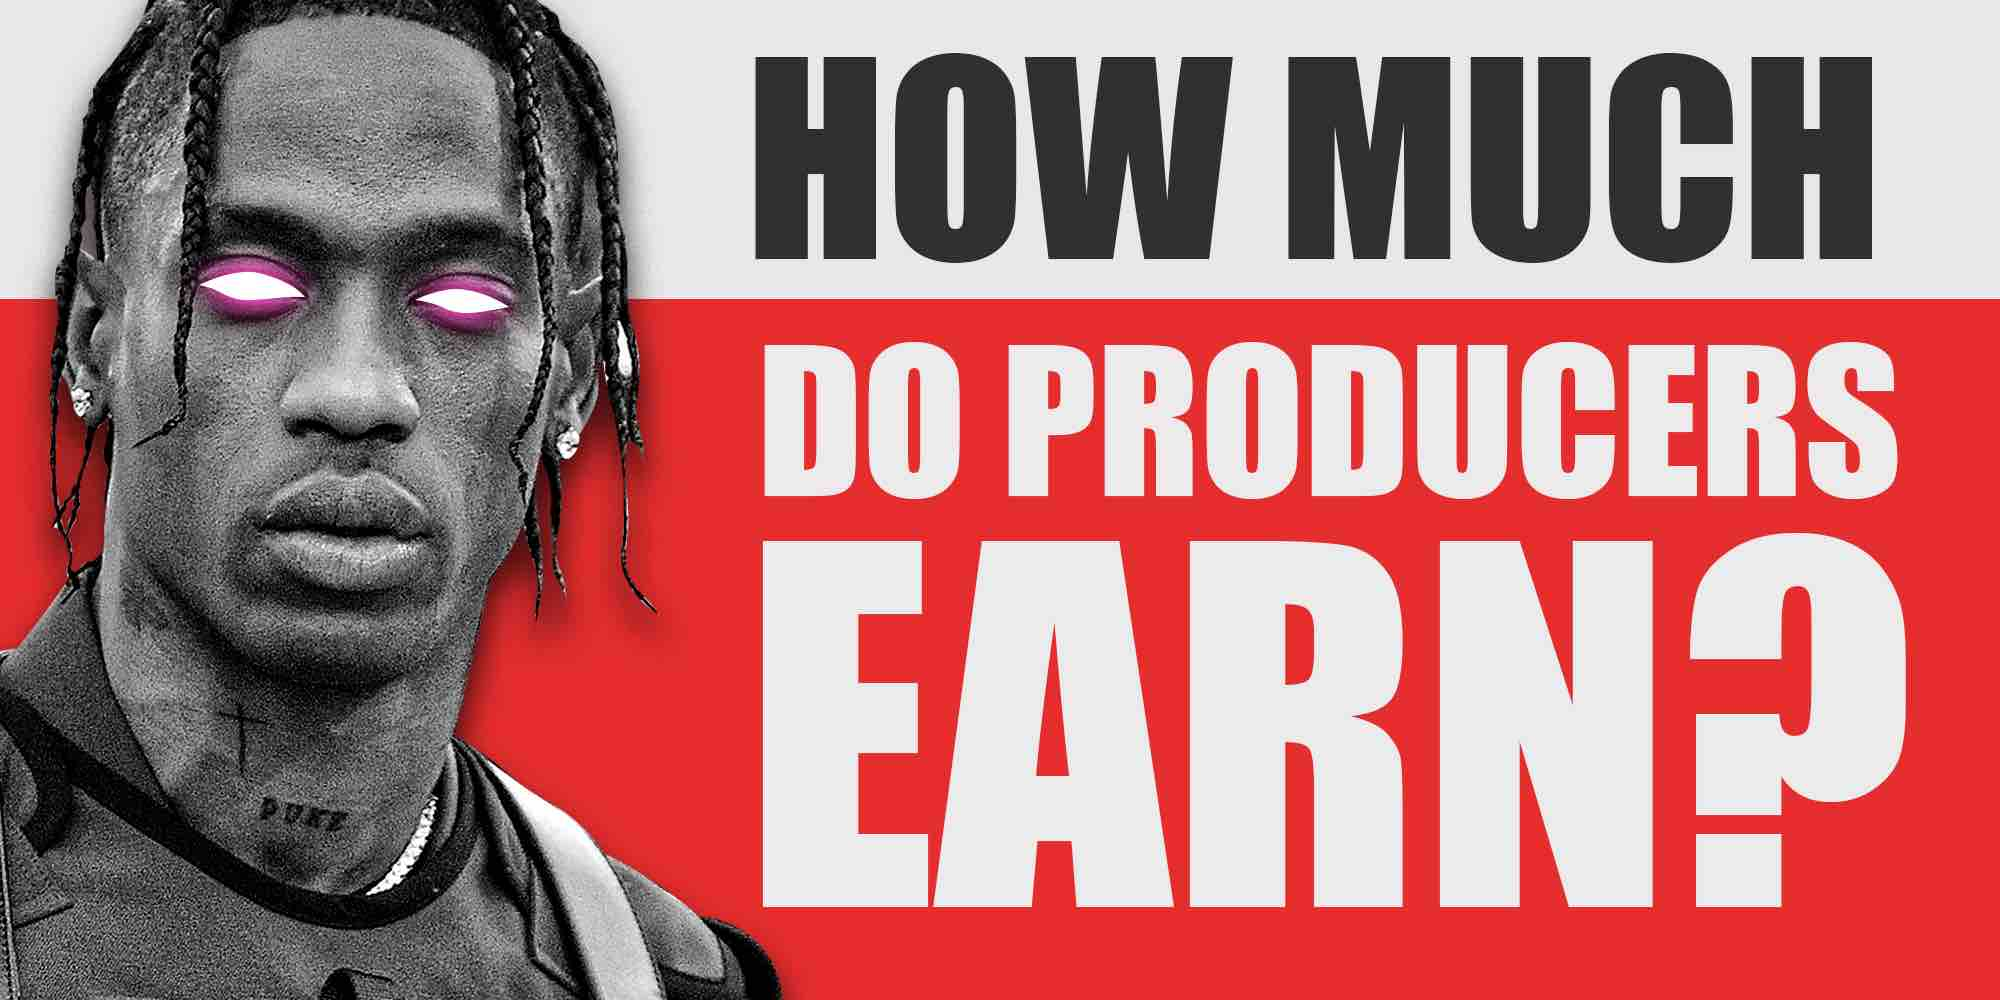 How much to producers earn?